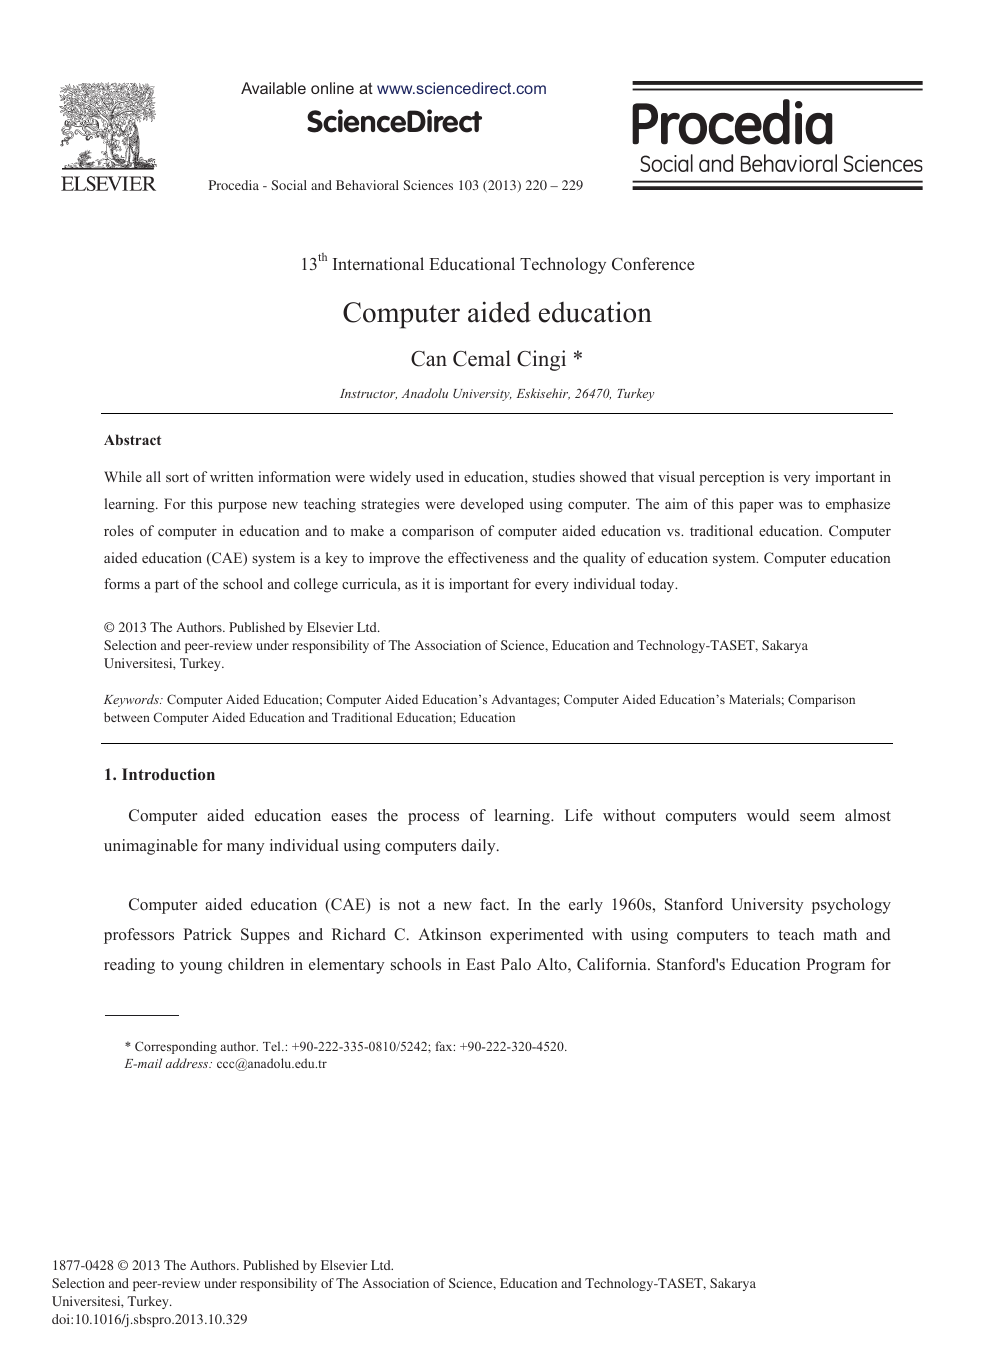 Research paper on computers in education creating a resume with 5 jobs